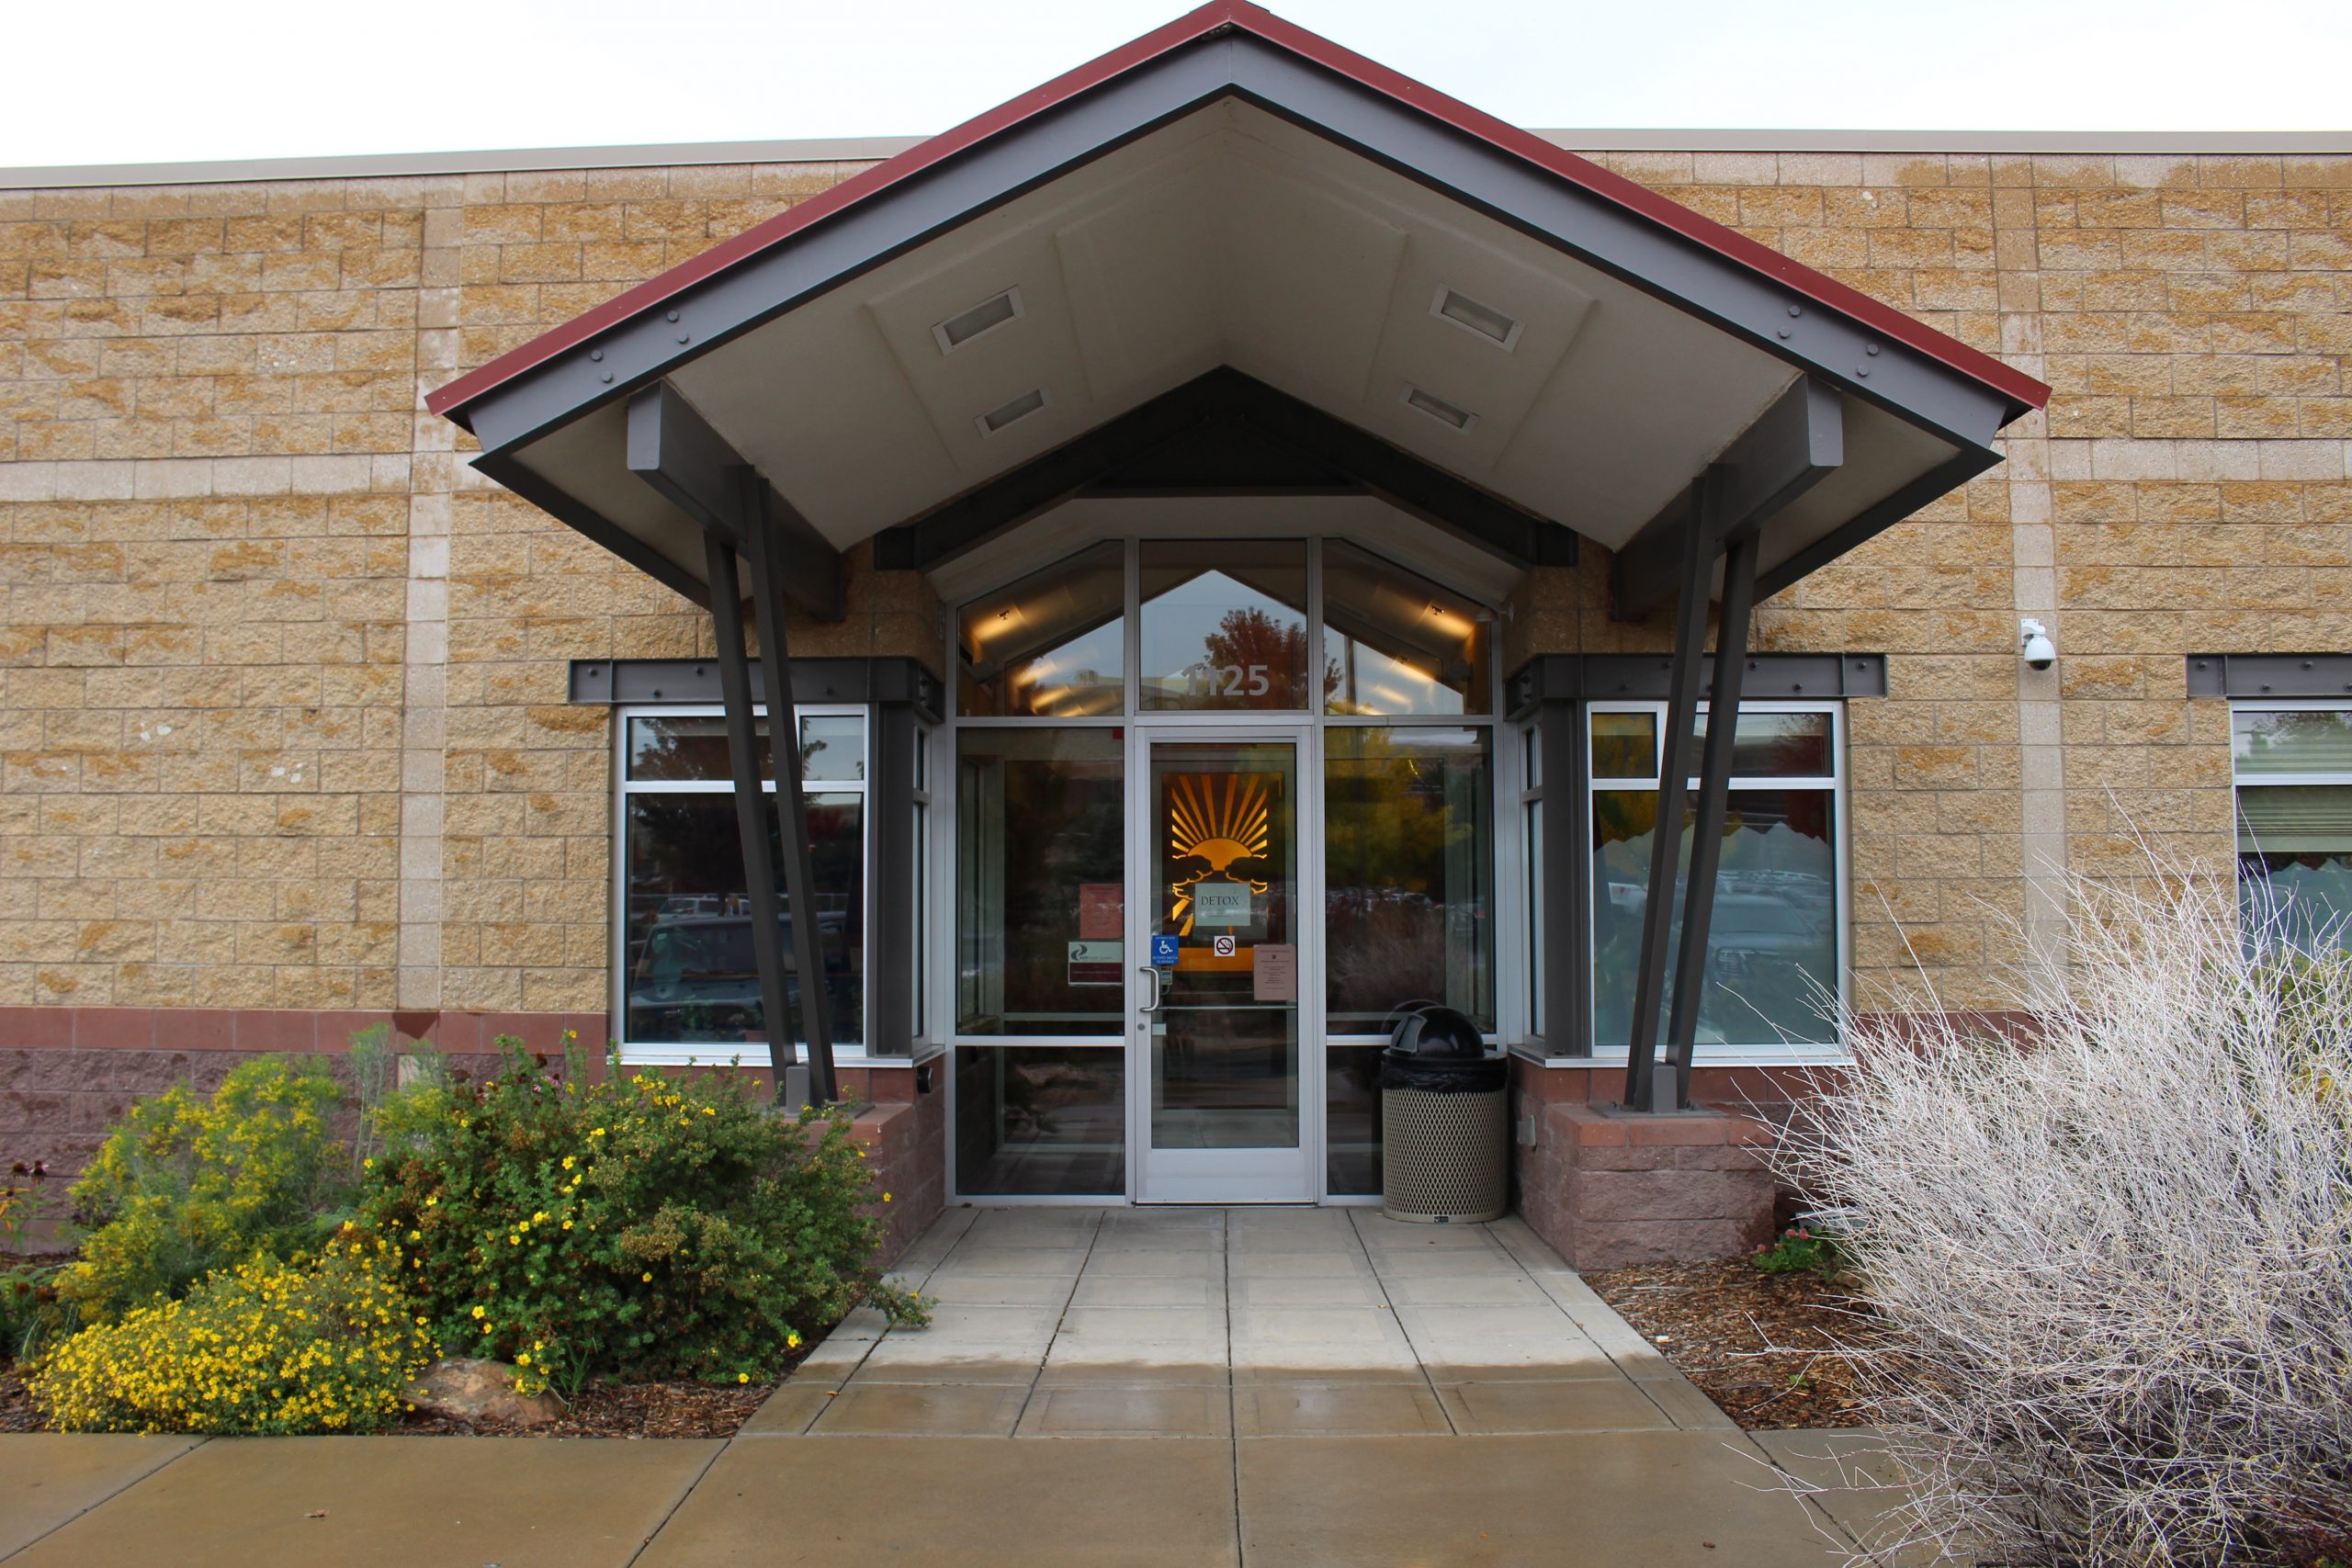 Access mental health at Crossroads at Grandview, located in the Mercy Regional Medical complex.